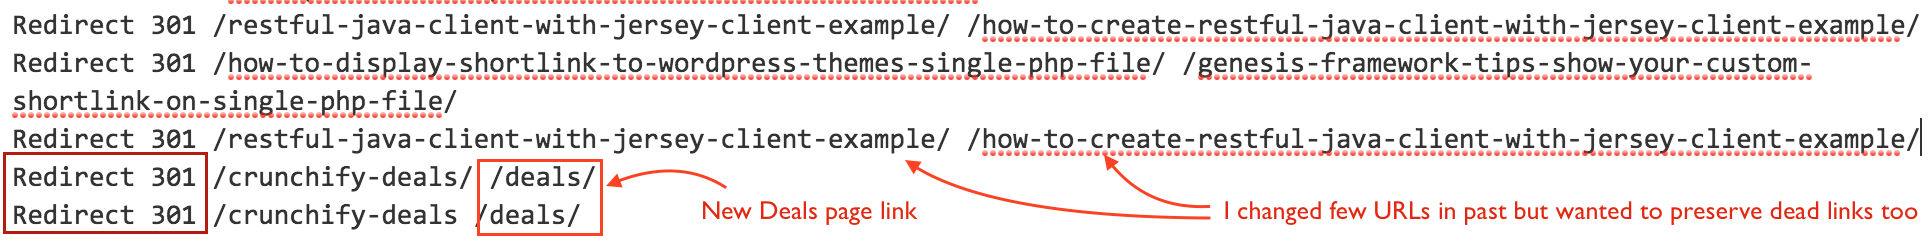 HTTP 301 Redirection in htaccess file - Fix WordPress 404 Error